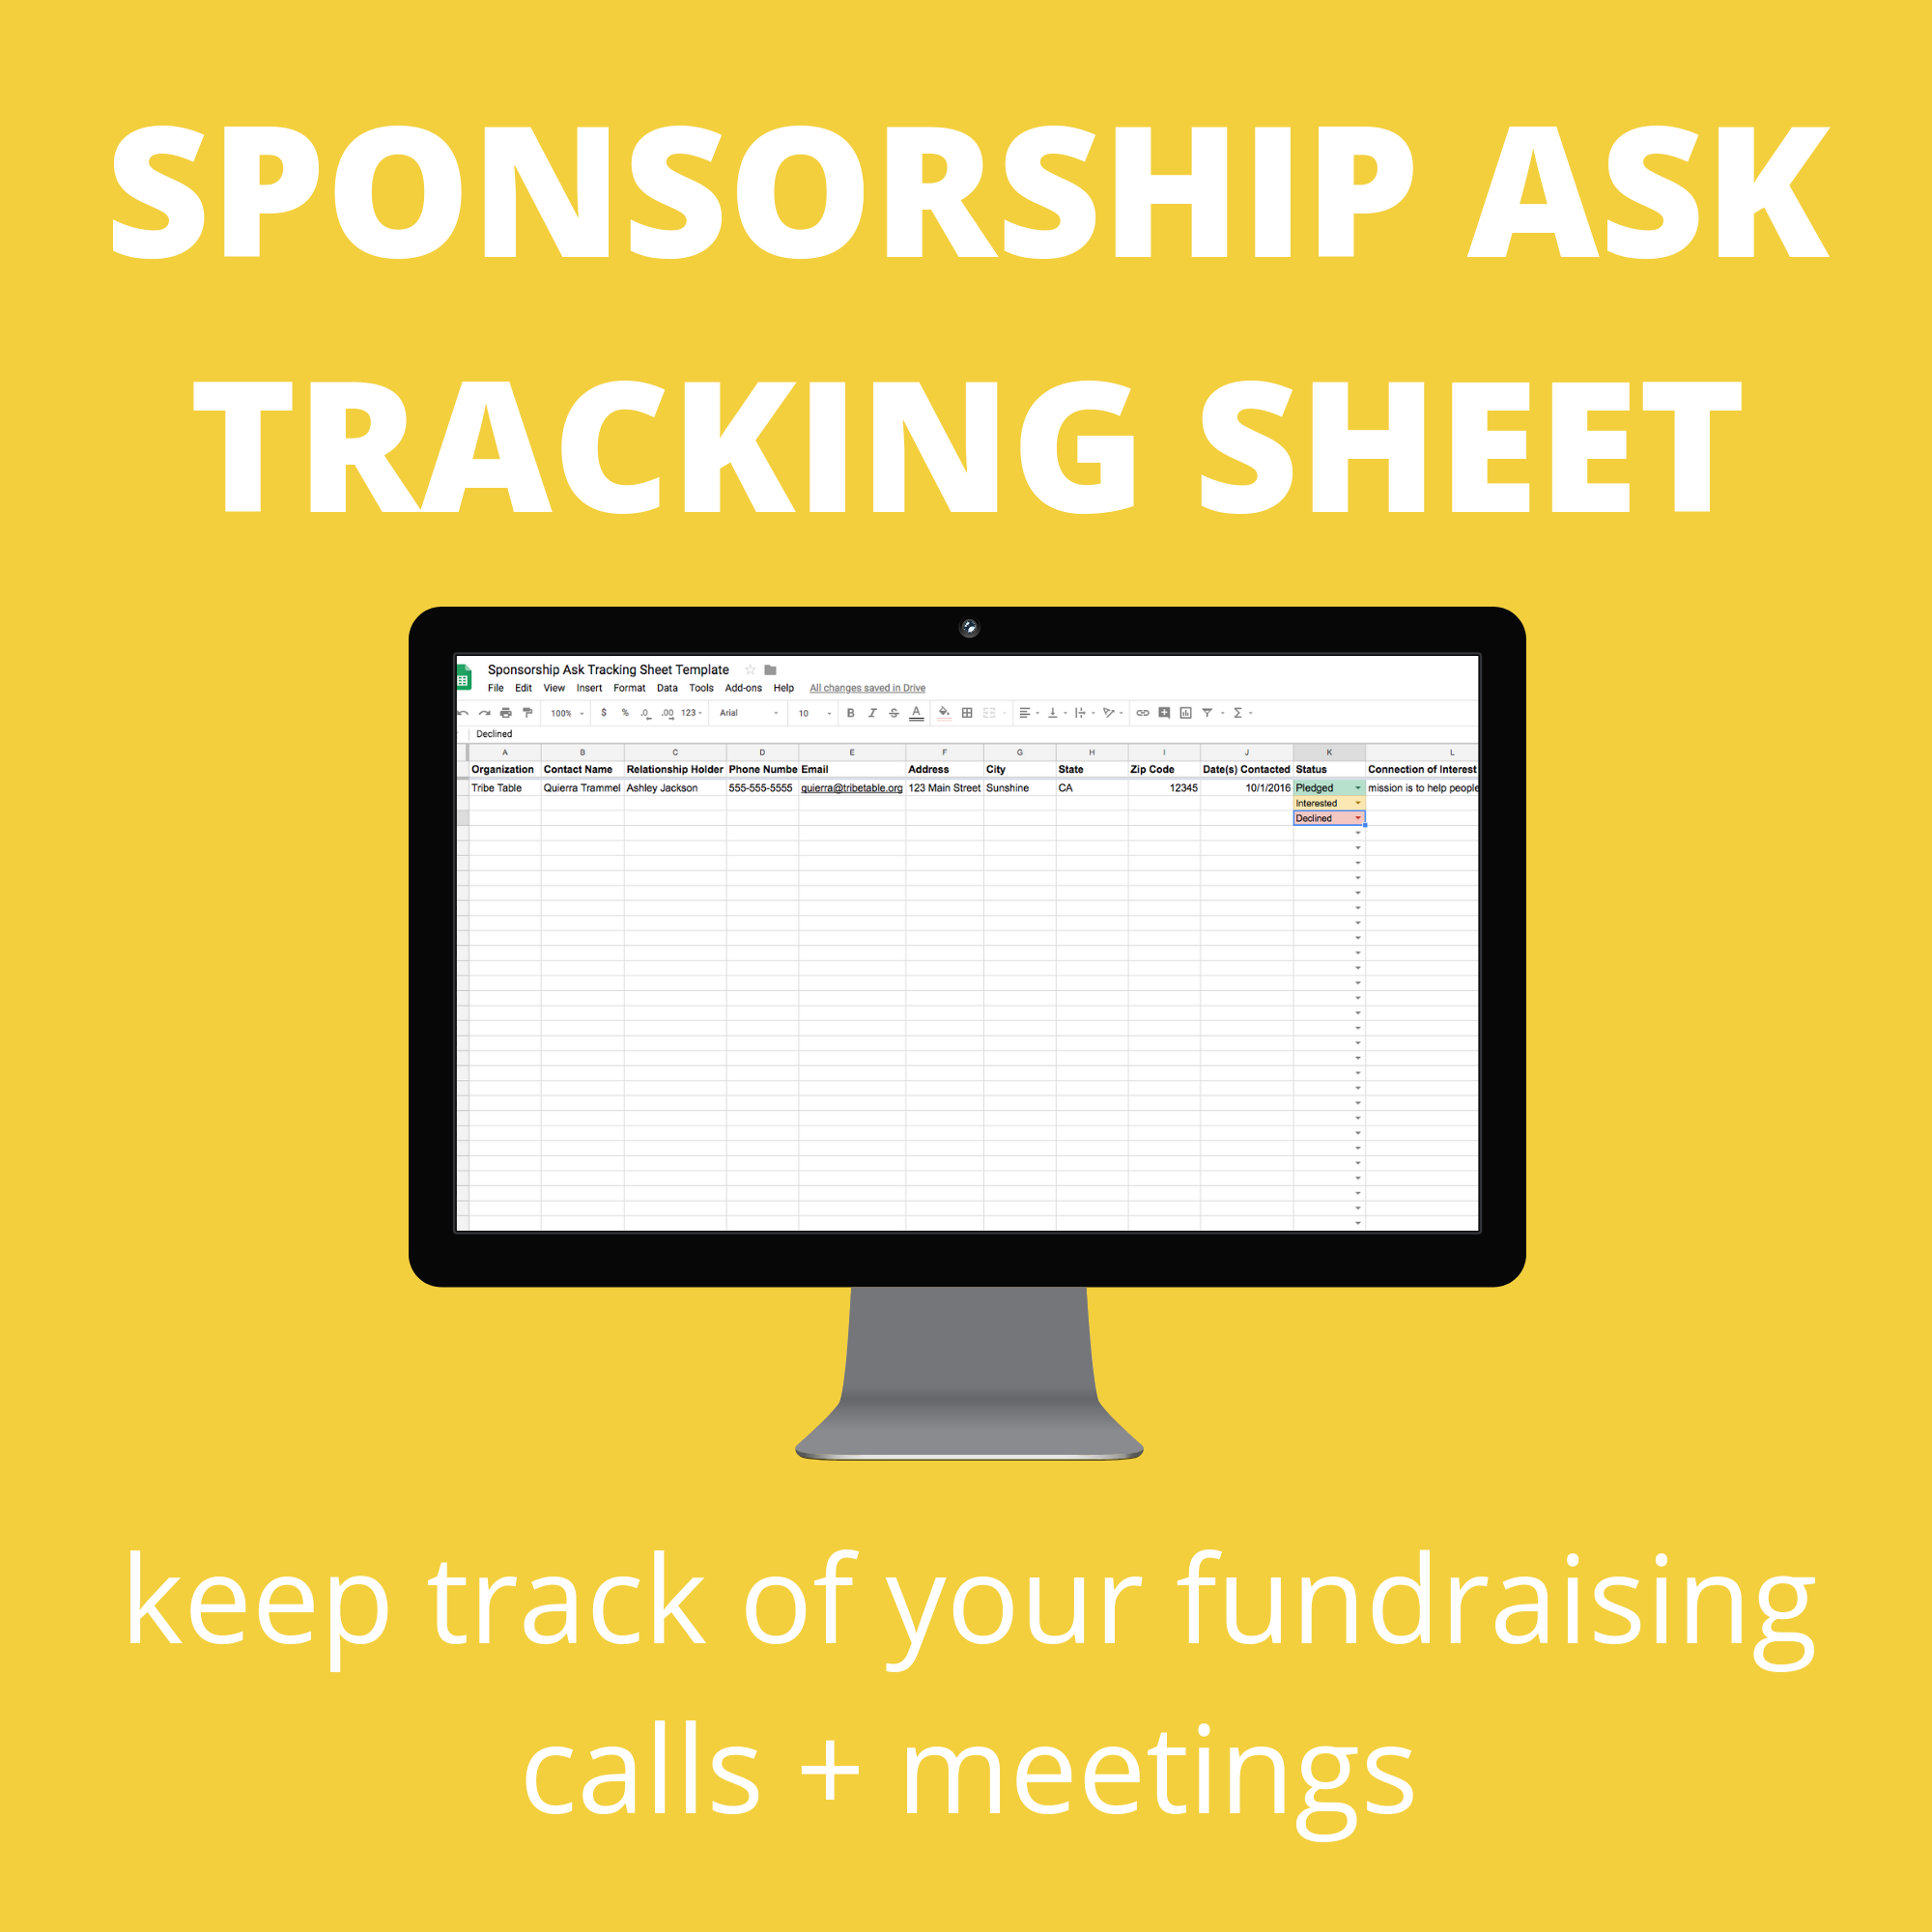 sponsorship ask tracking sheet